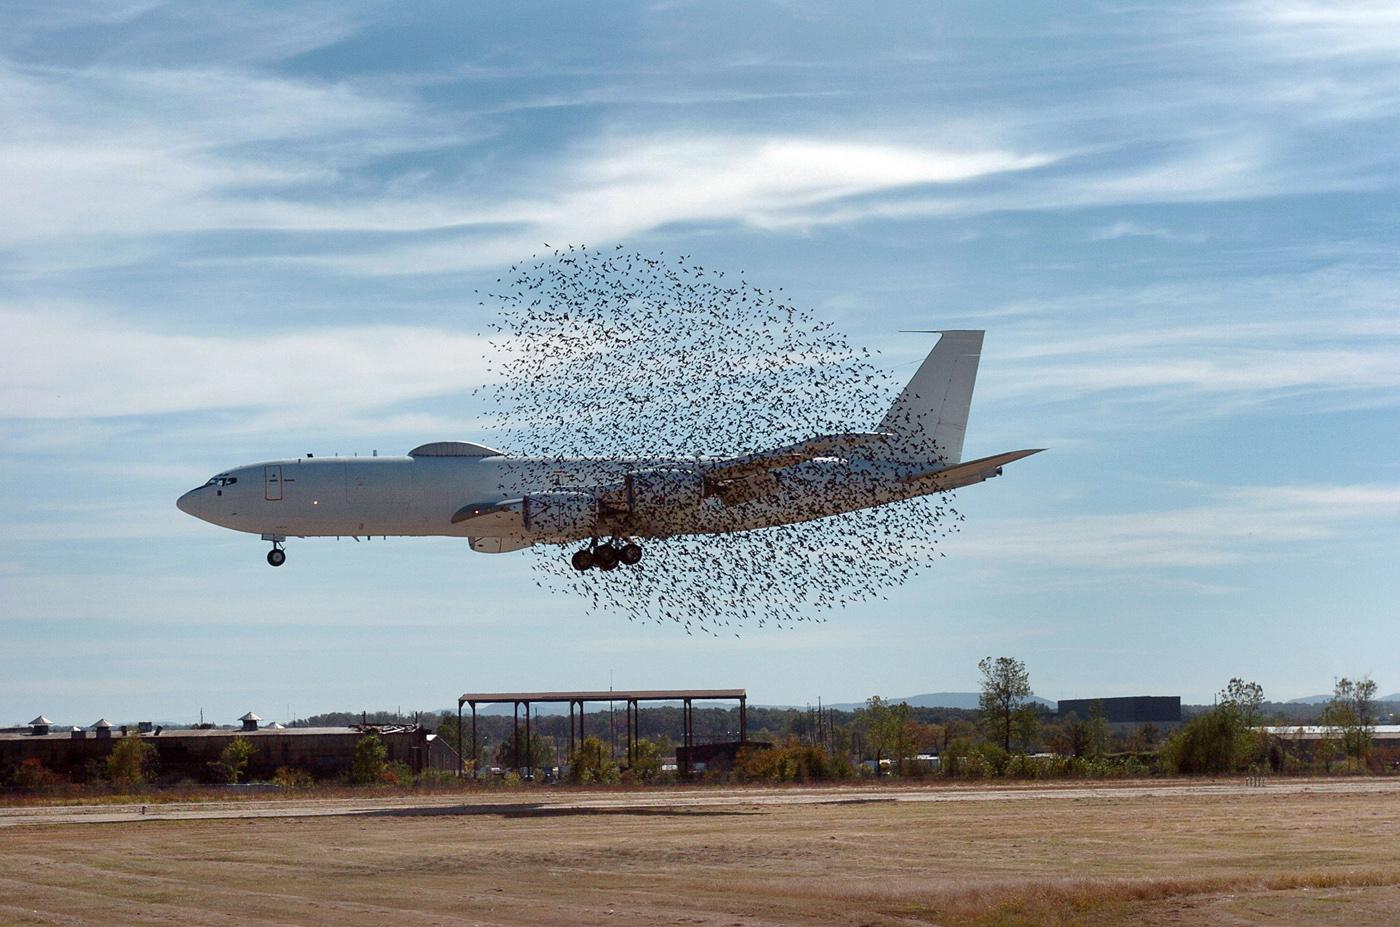 The Federal Aviation Administration reports that more than 108,000 wildlife strikes to airplanes occurred in the last 19 years, with an average of 20 wildlife strikes reported daily from 2004-2008. (Photo by Caters News Agency)